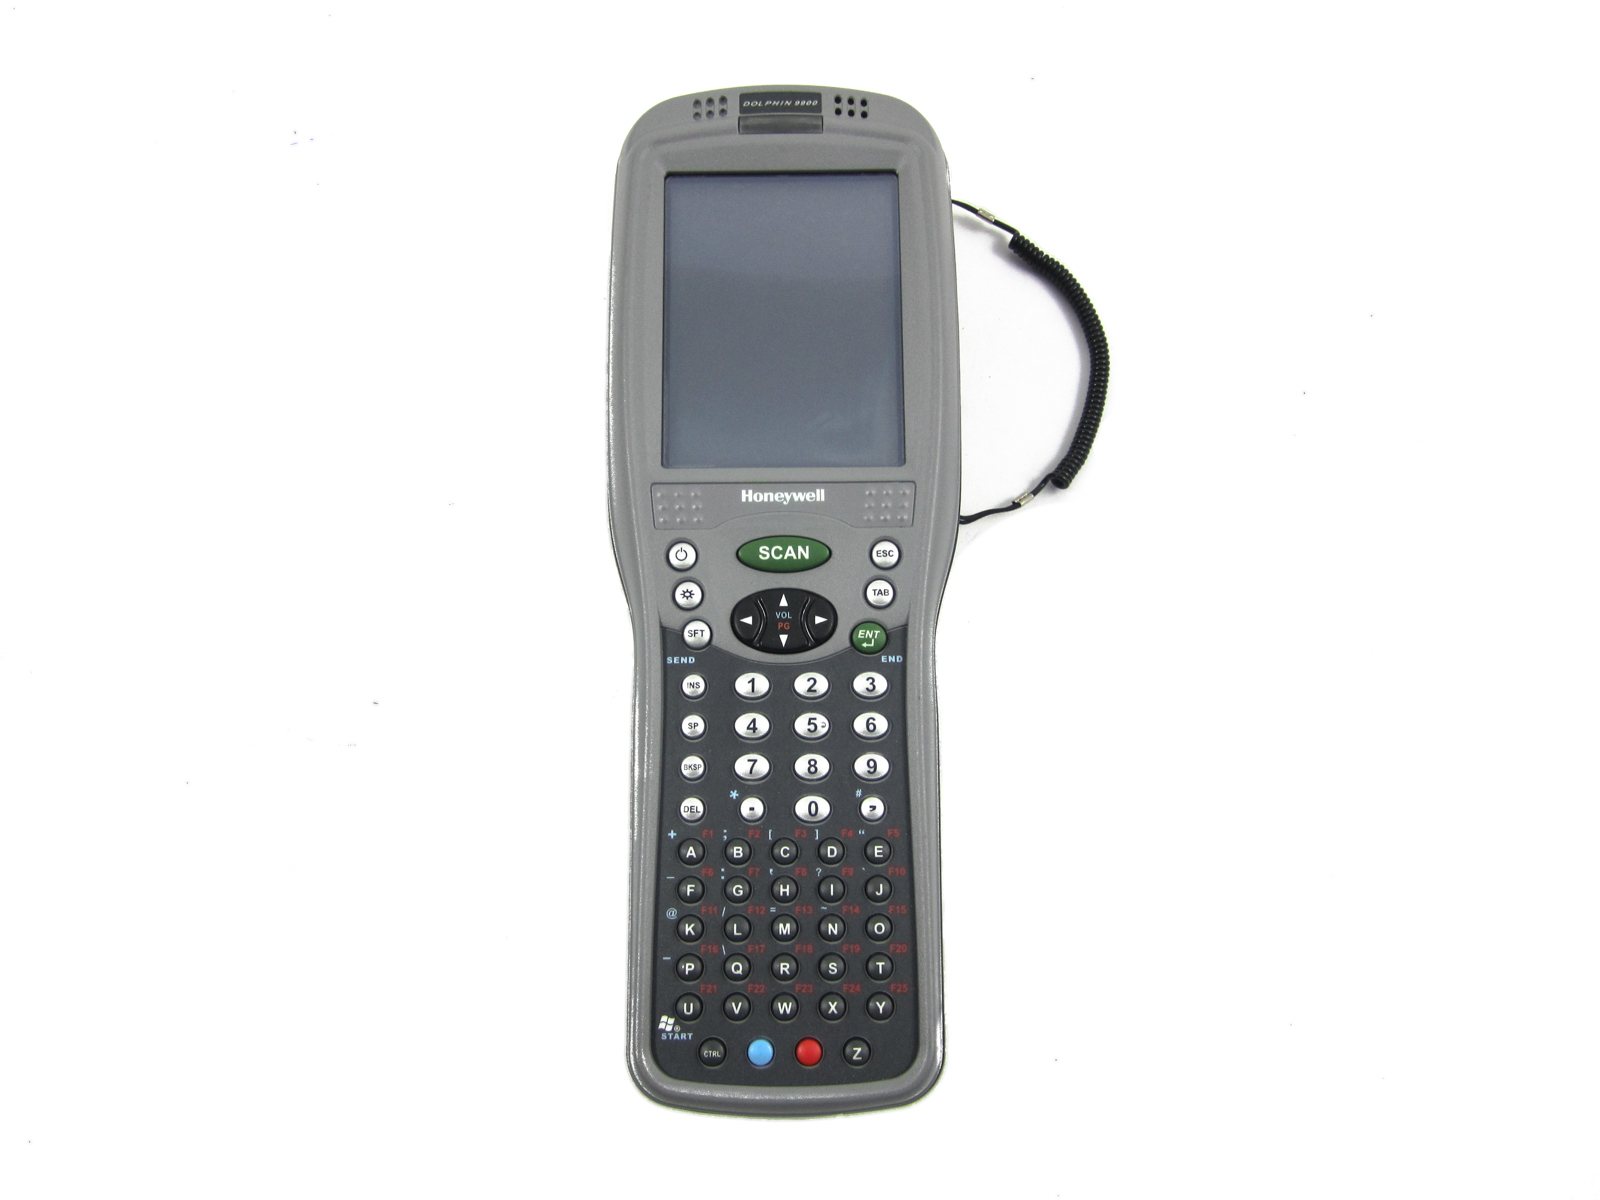 Honeywell Dolphin 9900 EMEA Wifi Bluetooth Windows Mobile 6 56 key 5100SF 9900E0P-721200